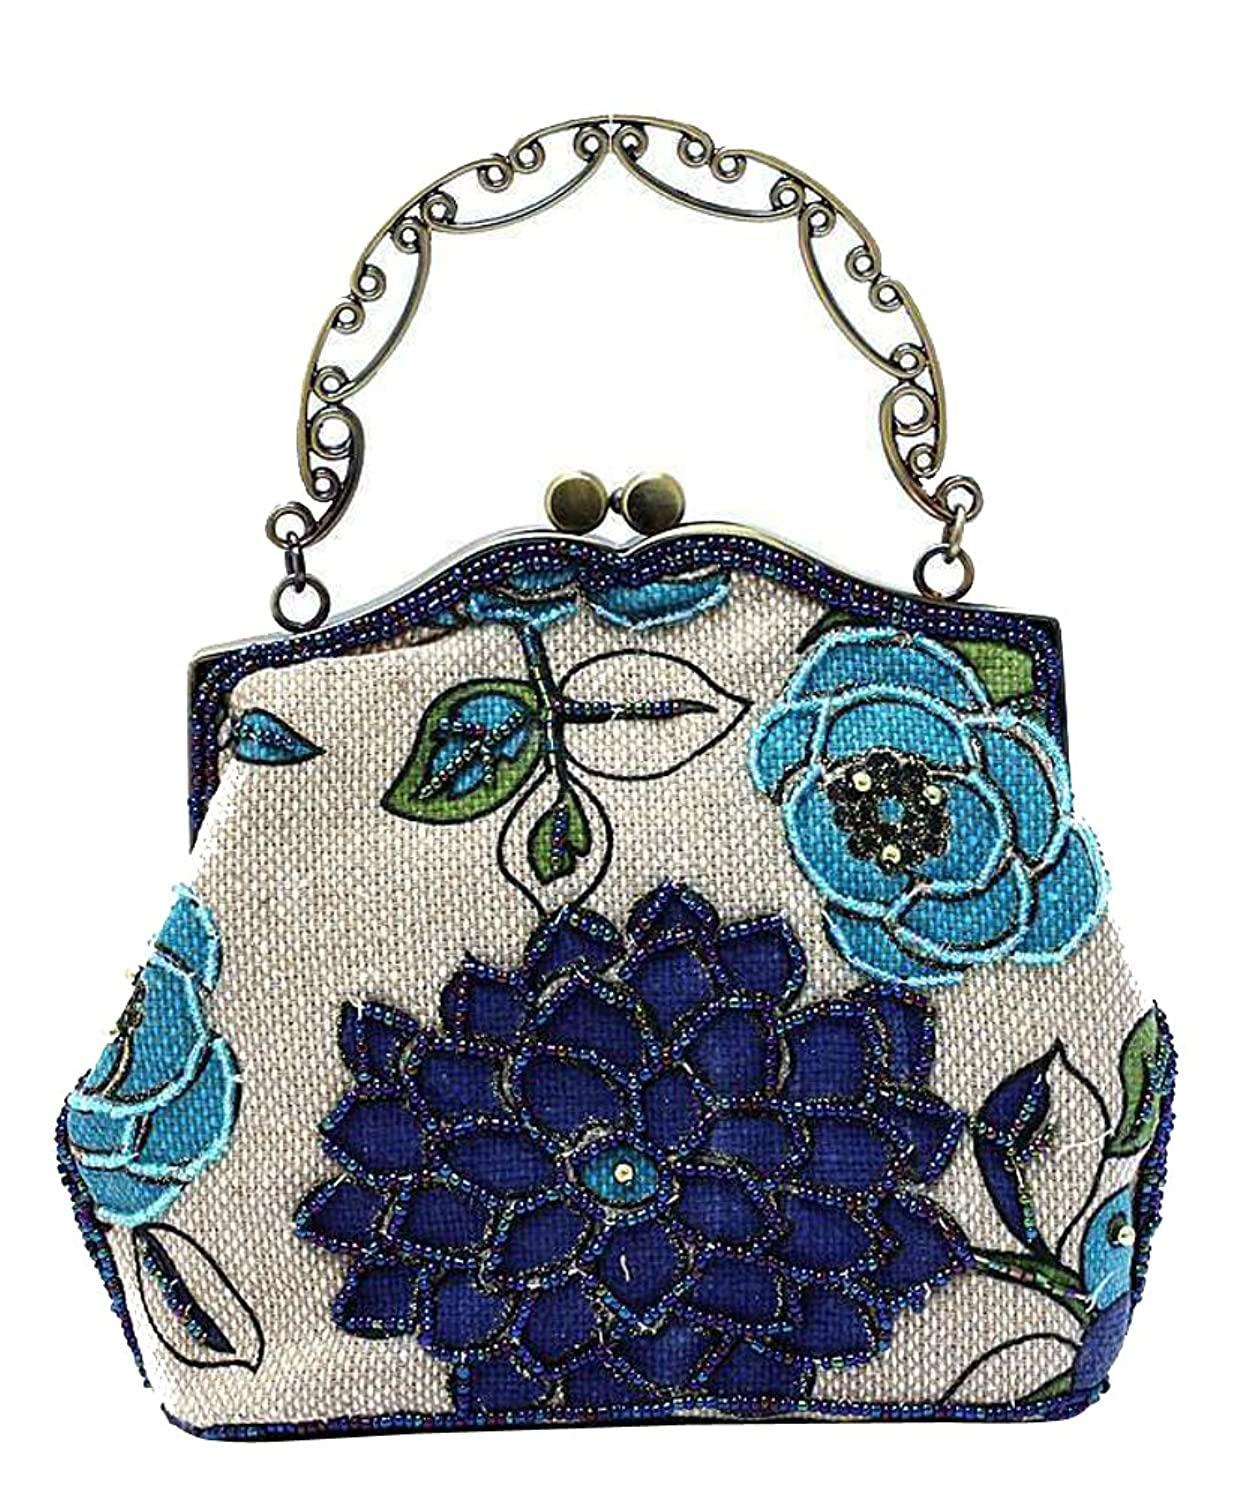 Edwardian Gloves, Handbag, Hair Combs, Wigs ILISHOP Womens Vintage Luxury Printing Beaded Women Handbag Evening Bag $19.99 AT vintagedancer.com